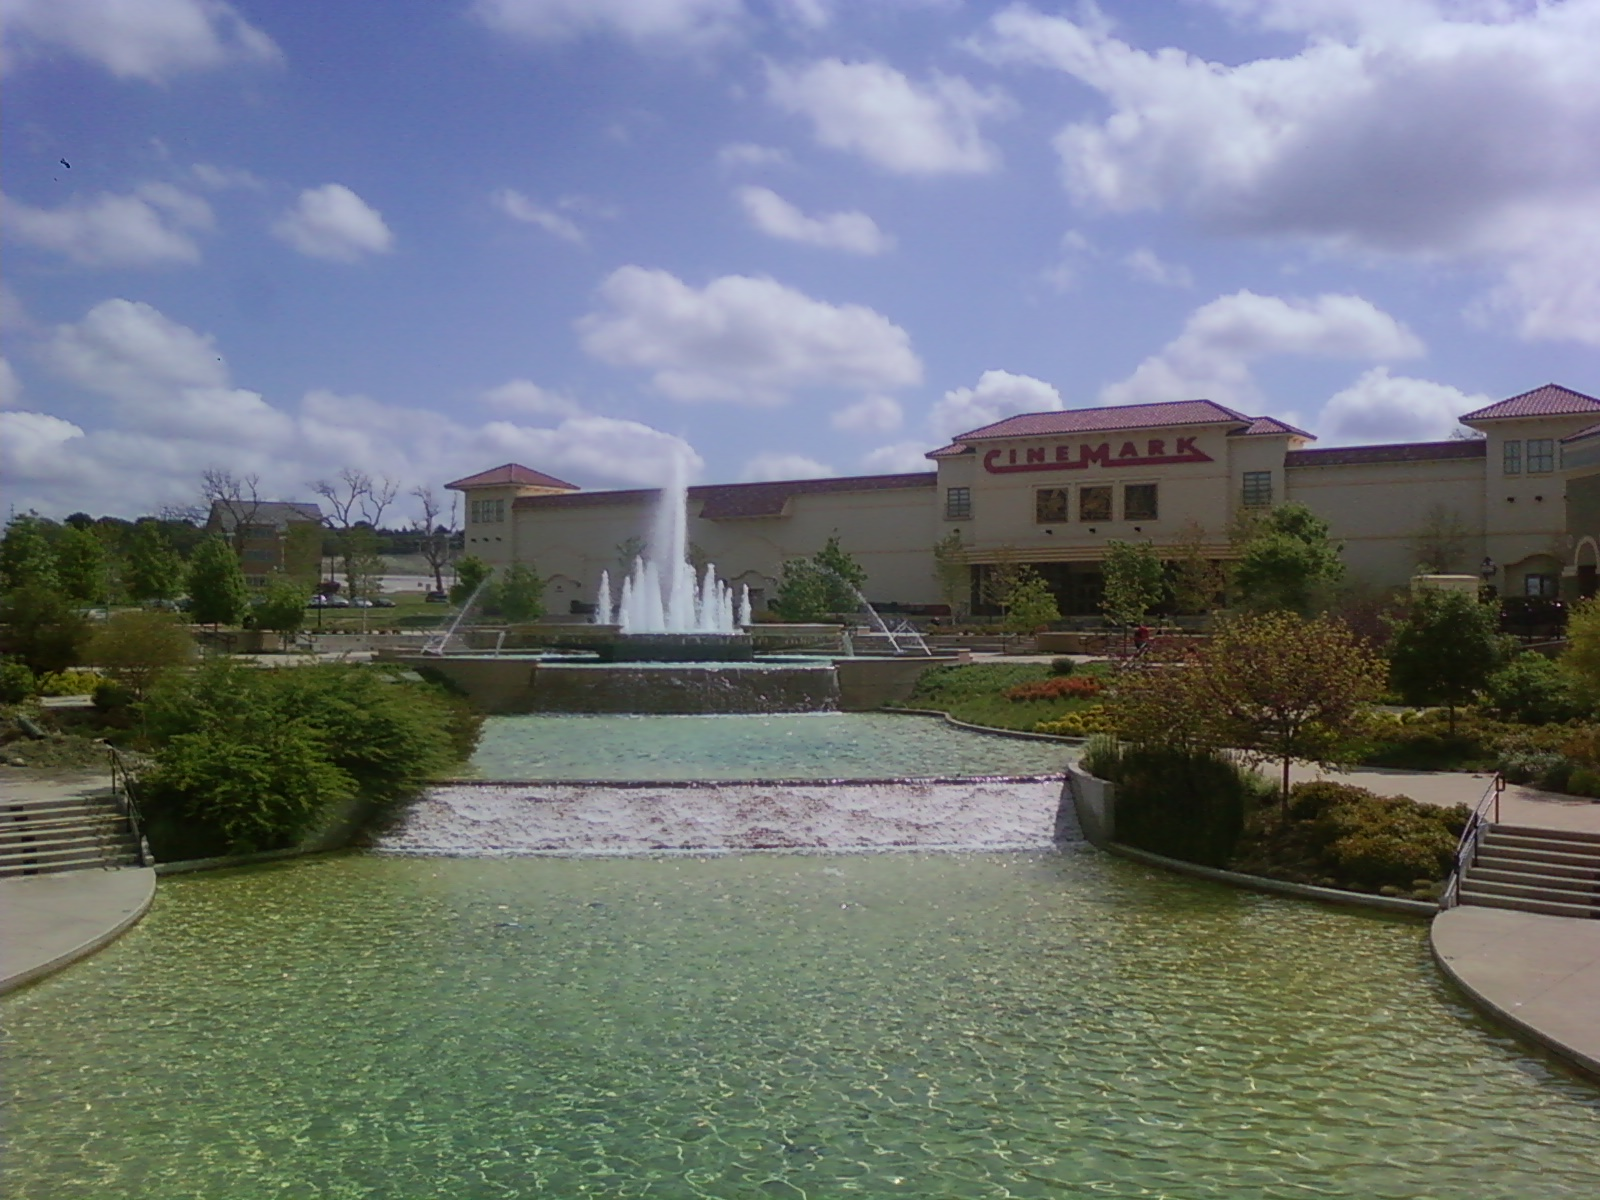 Rockwall TX: The Modern City on the Lake